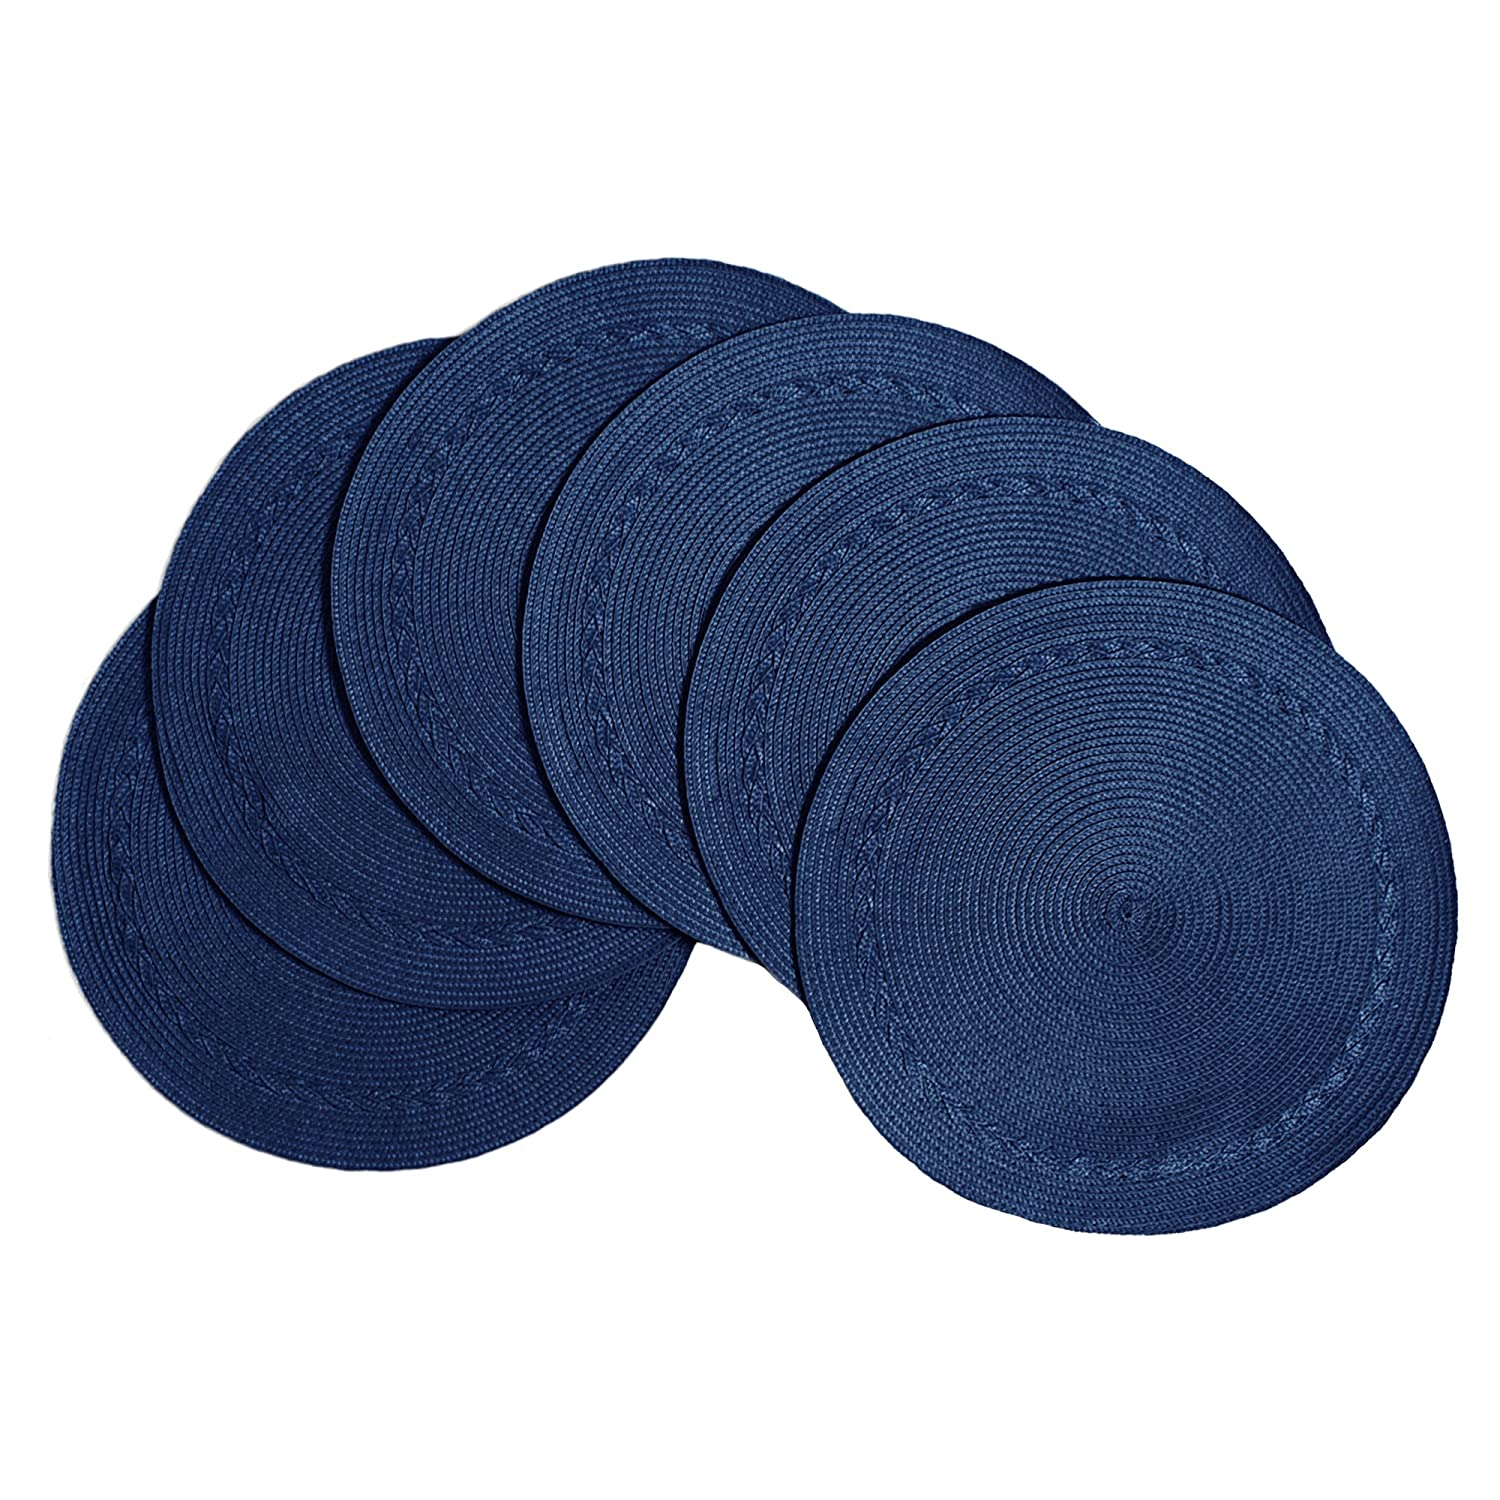 "Benson Mills Braided Edge Round Placemats (Set of 6), 15"", Navy"